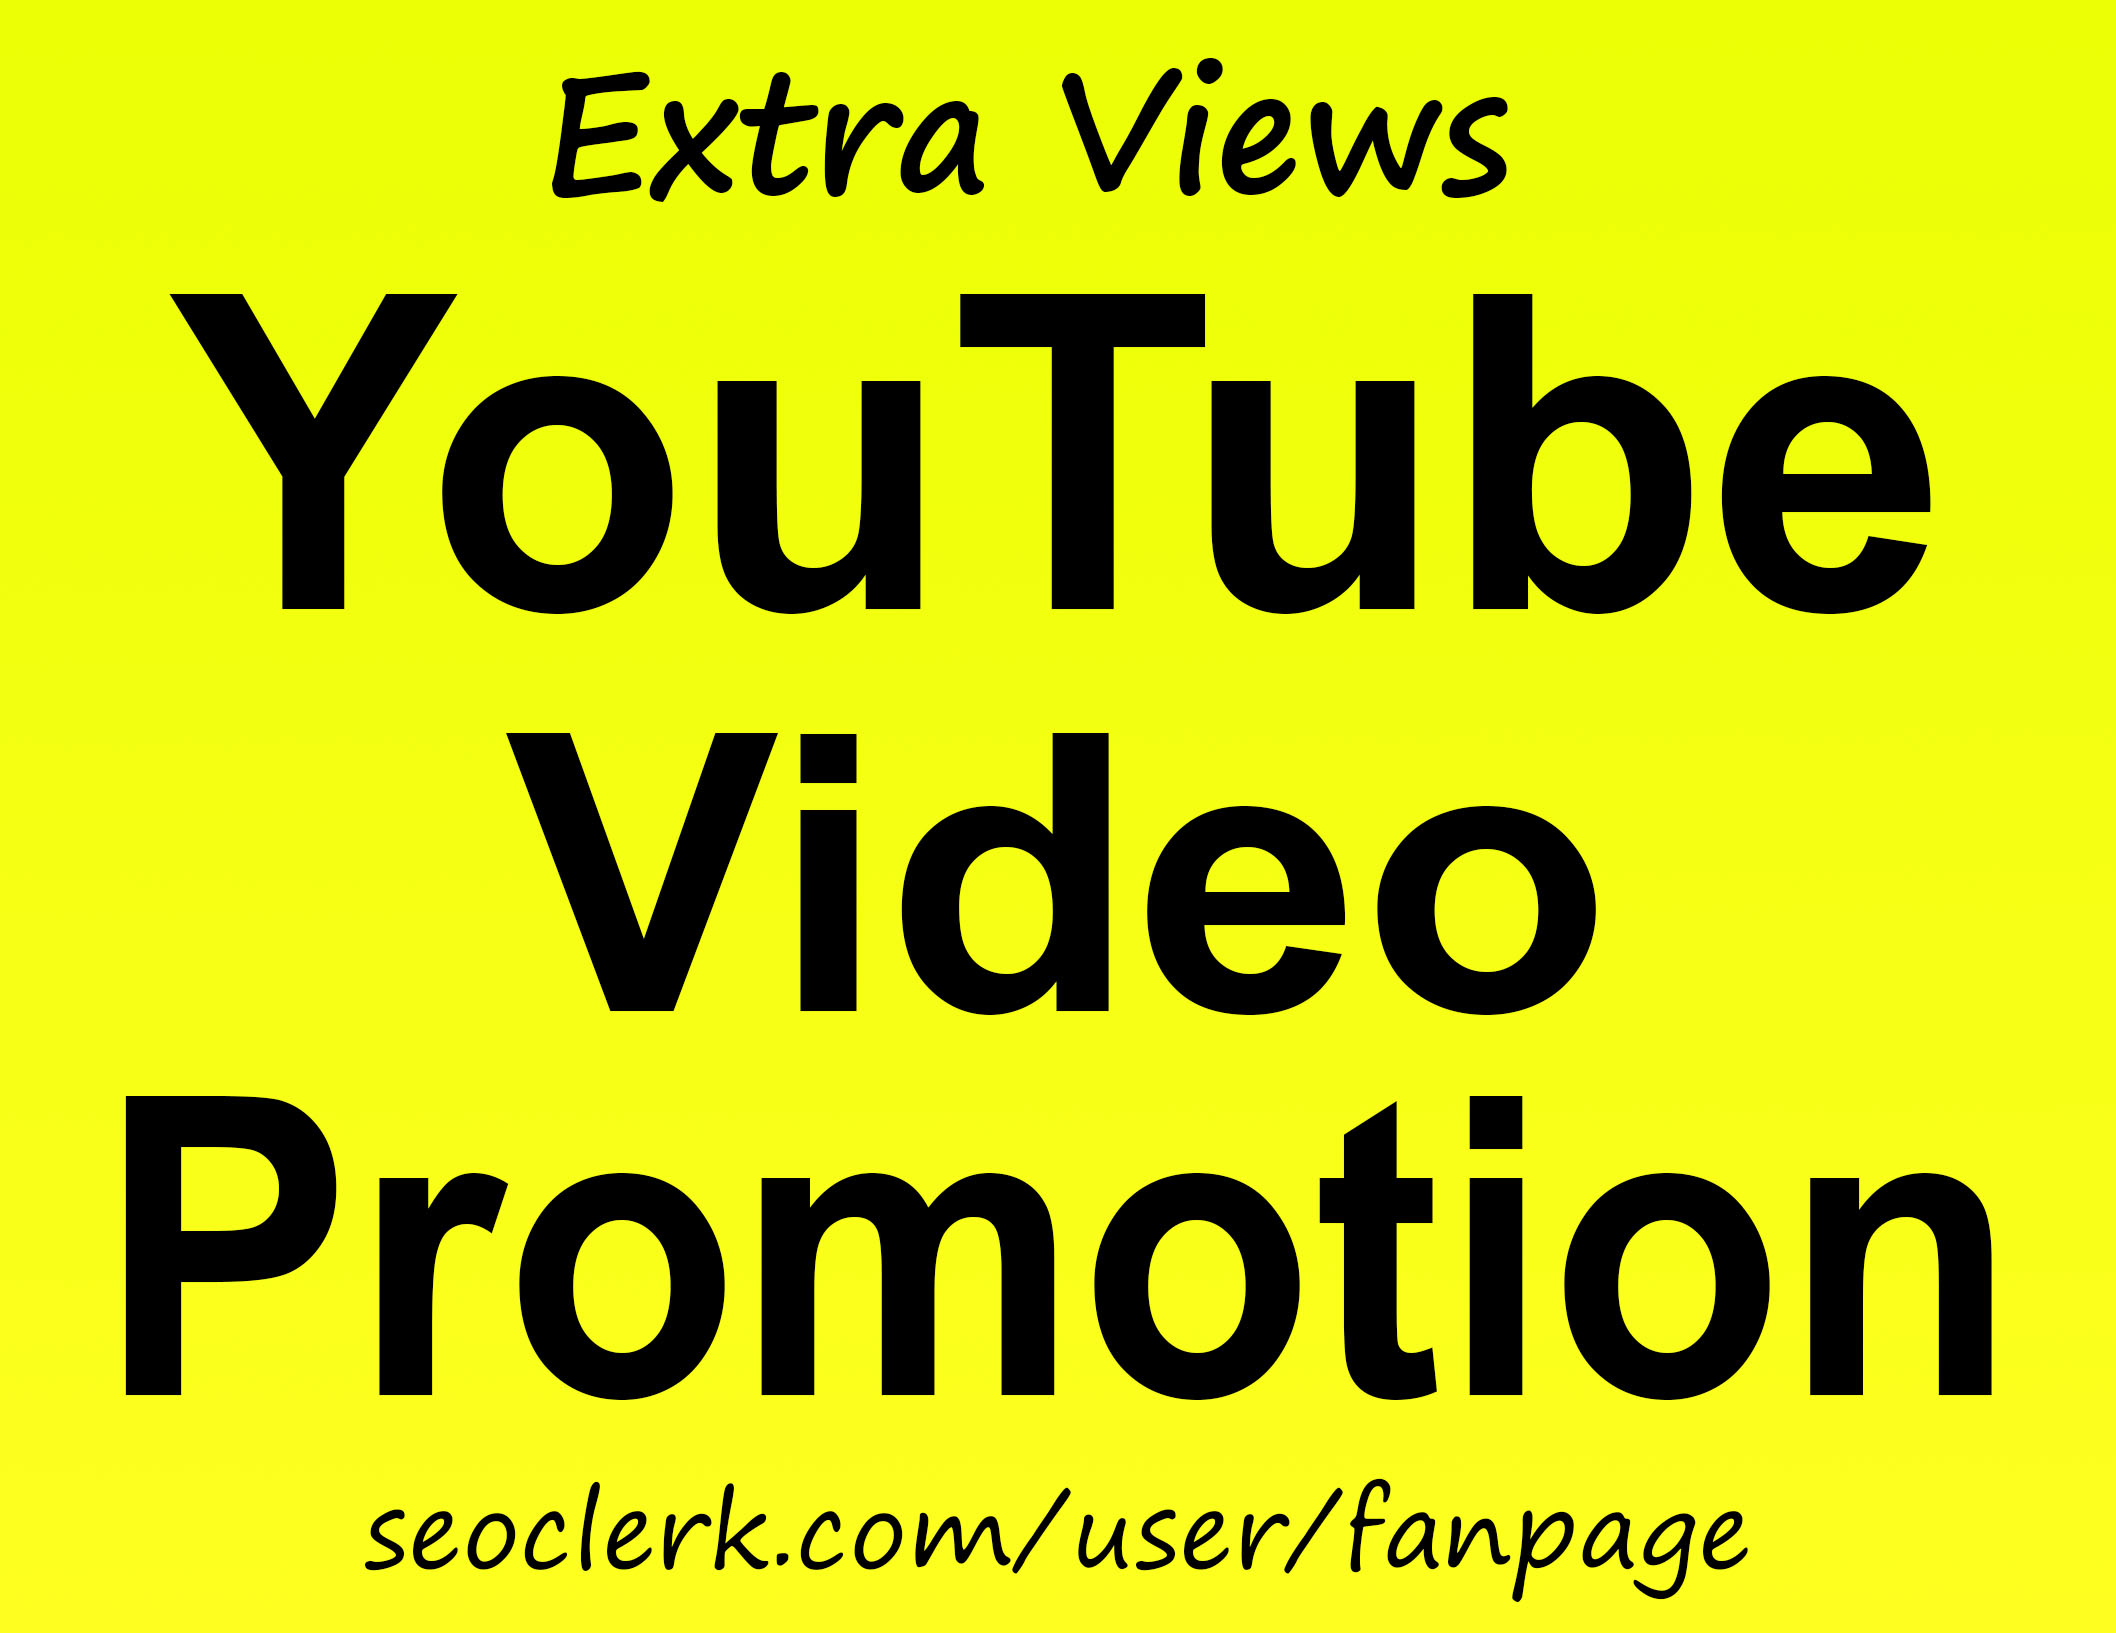 YouTube Video Promotion and Marketing Via Real Active Audience